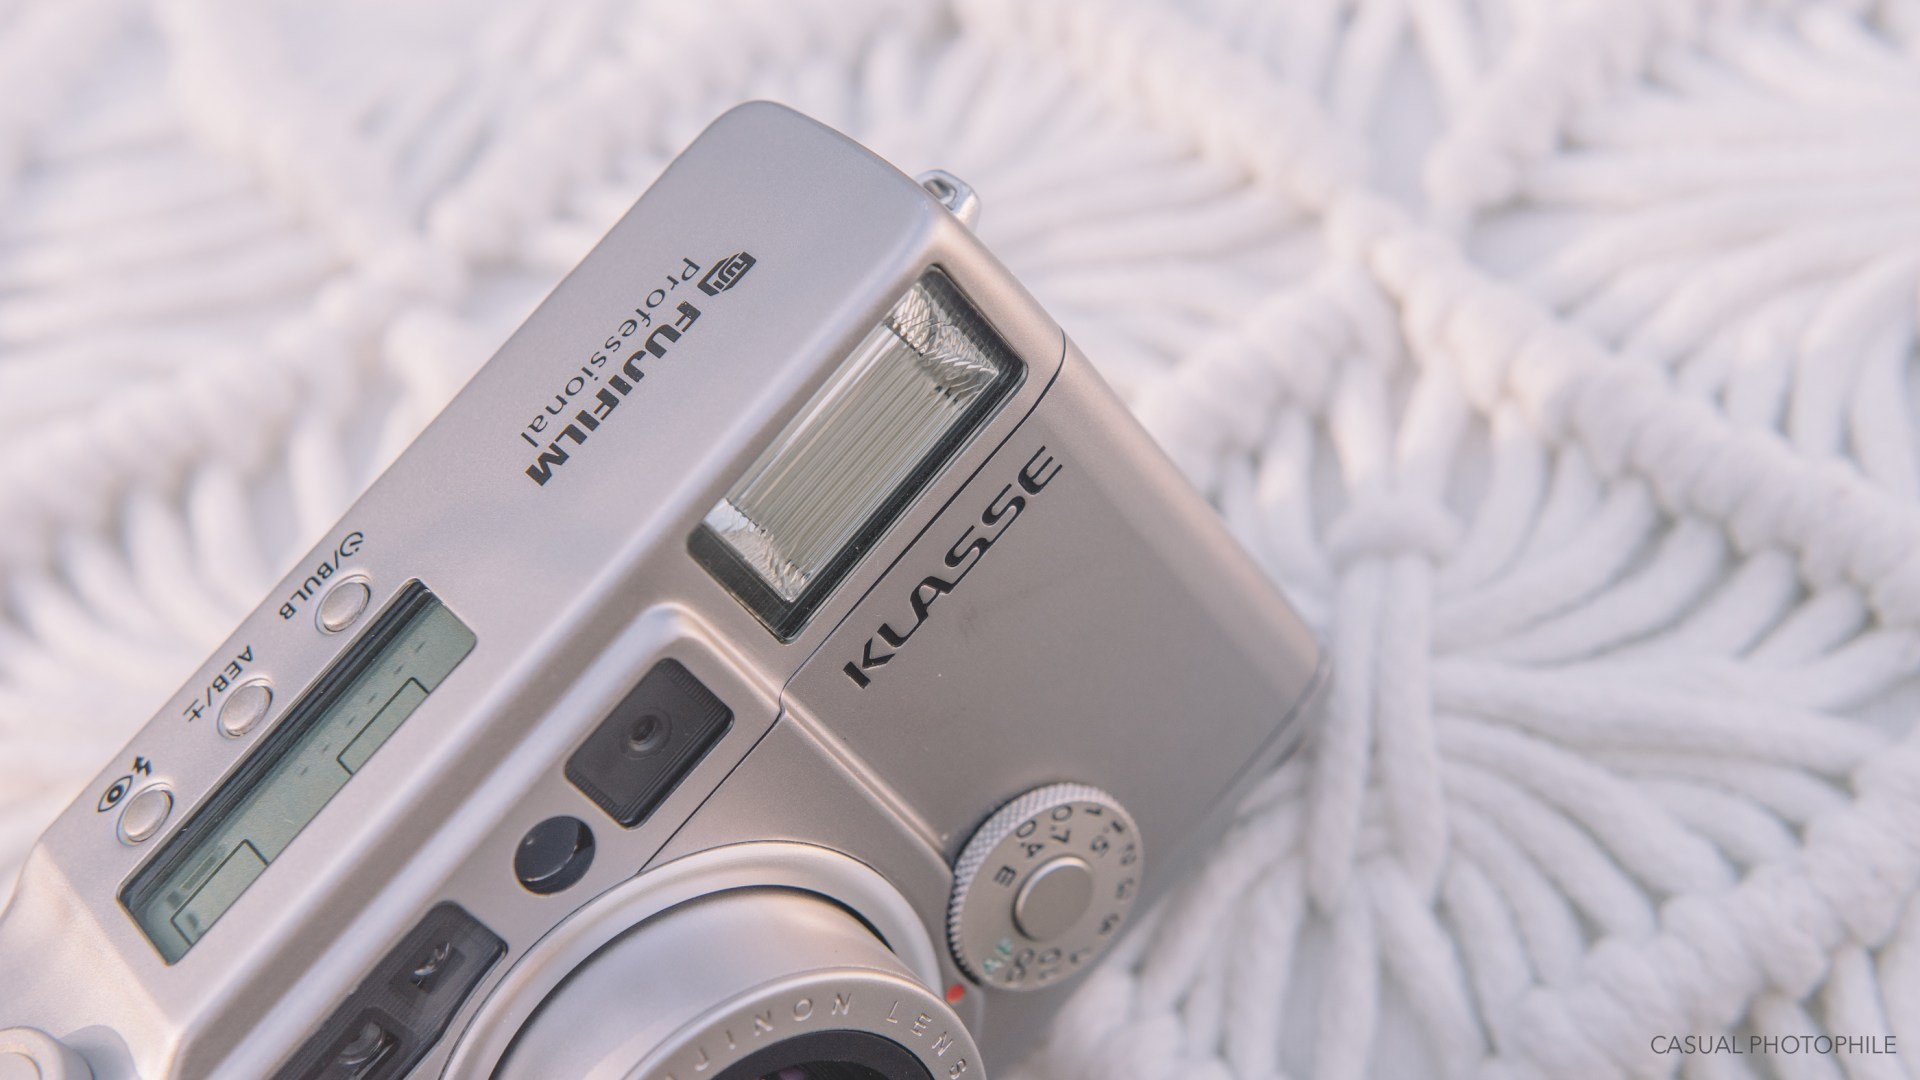 Fujifilm Klasse - A Hype-free Review - Casual Photophile